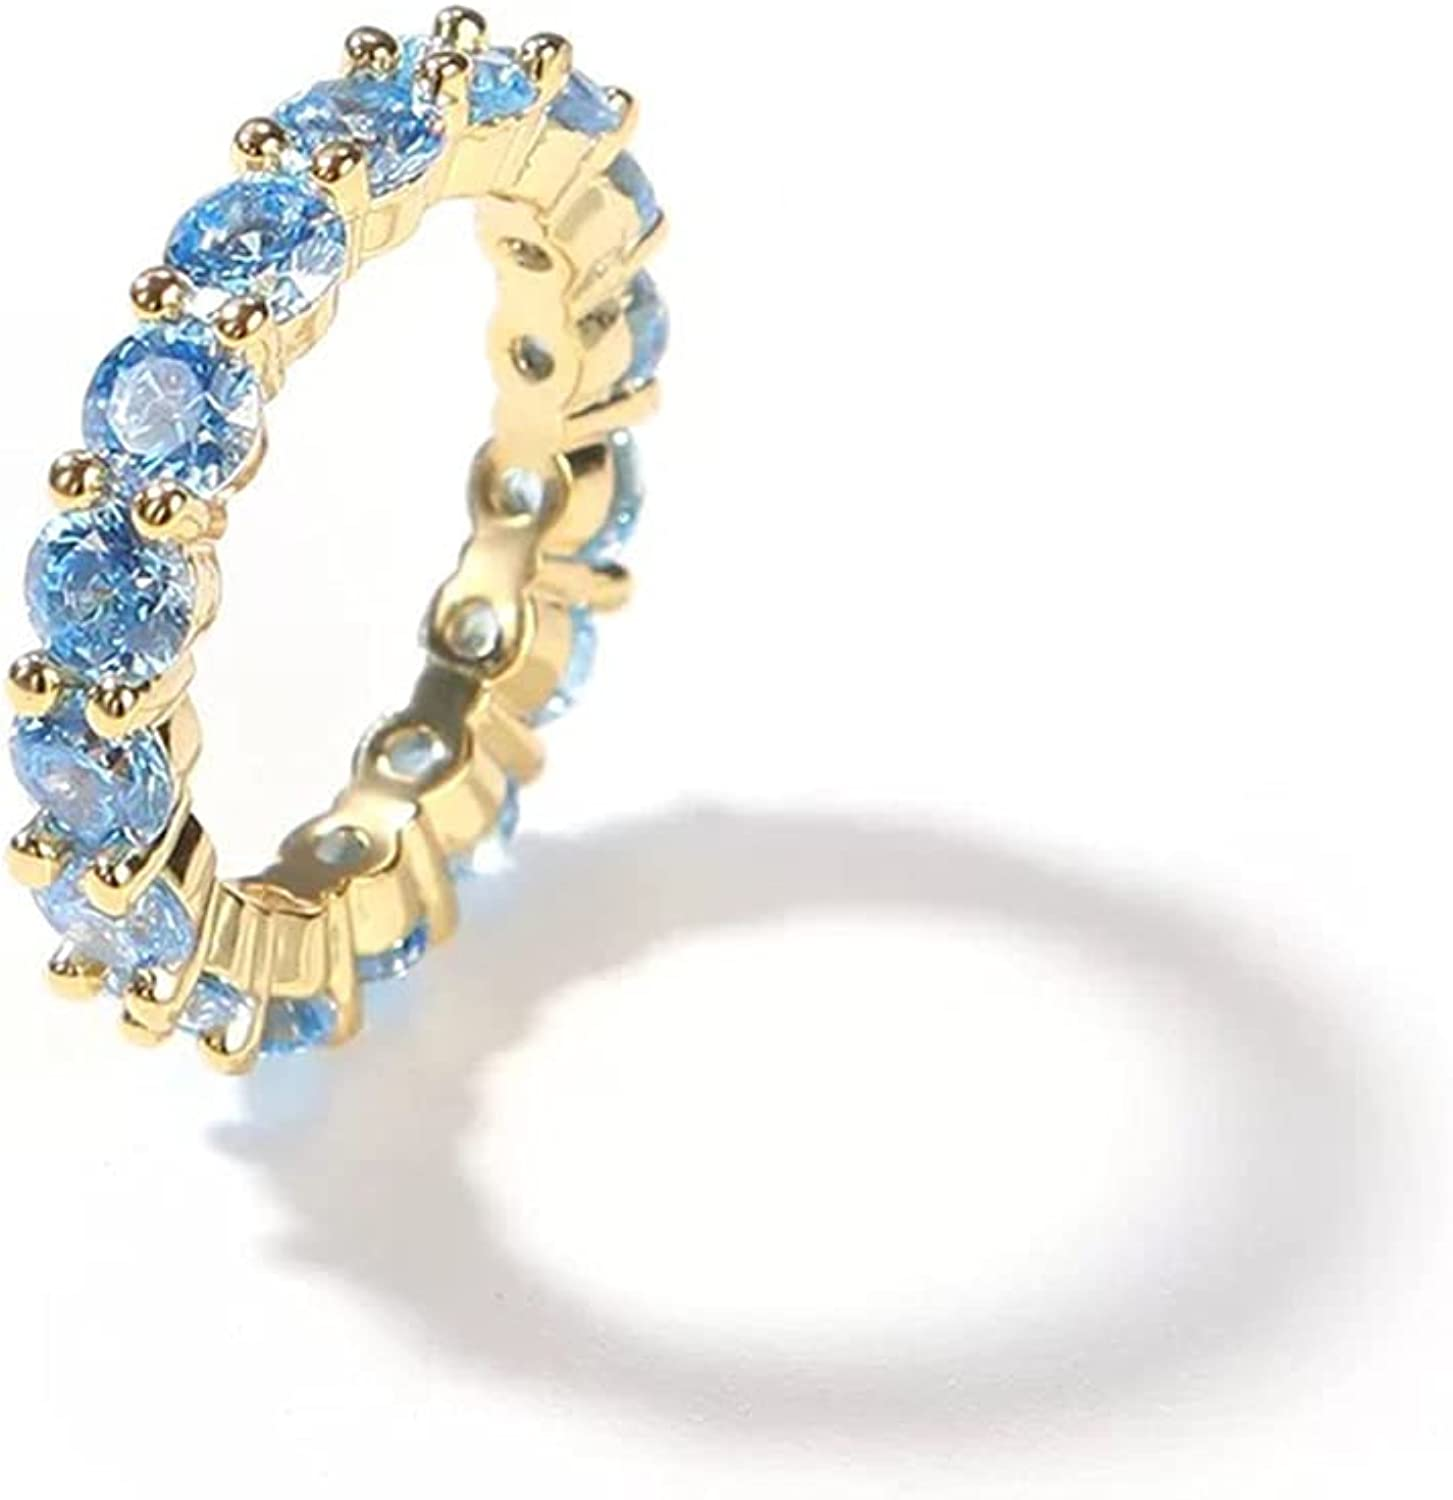 TKMIRA 14K Gold Plated Rings 2021new shipping free Zirconia Cubic Eternity Bands Sales of SALE items from new works